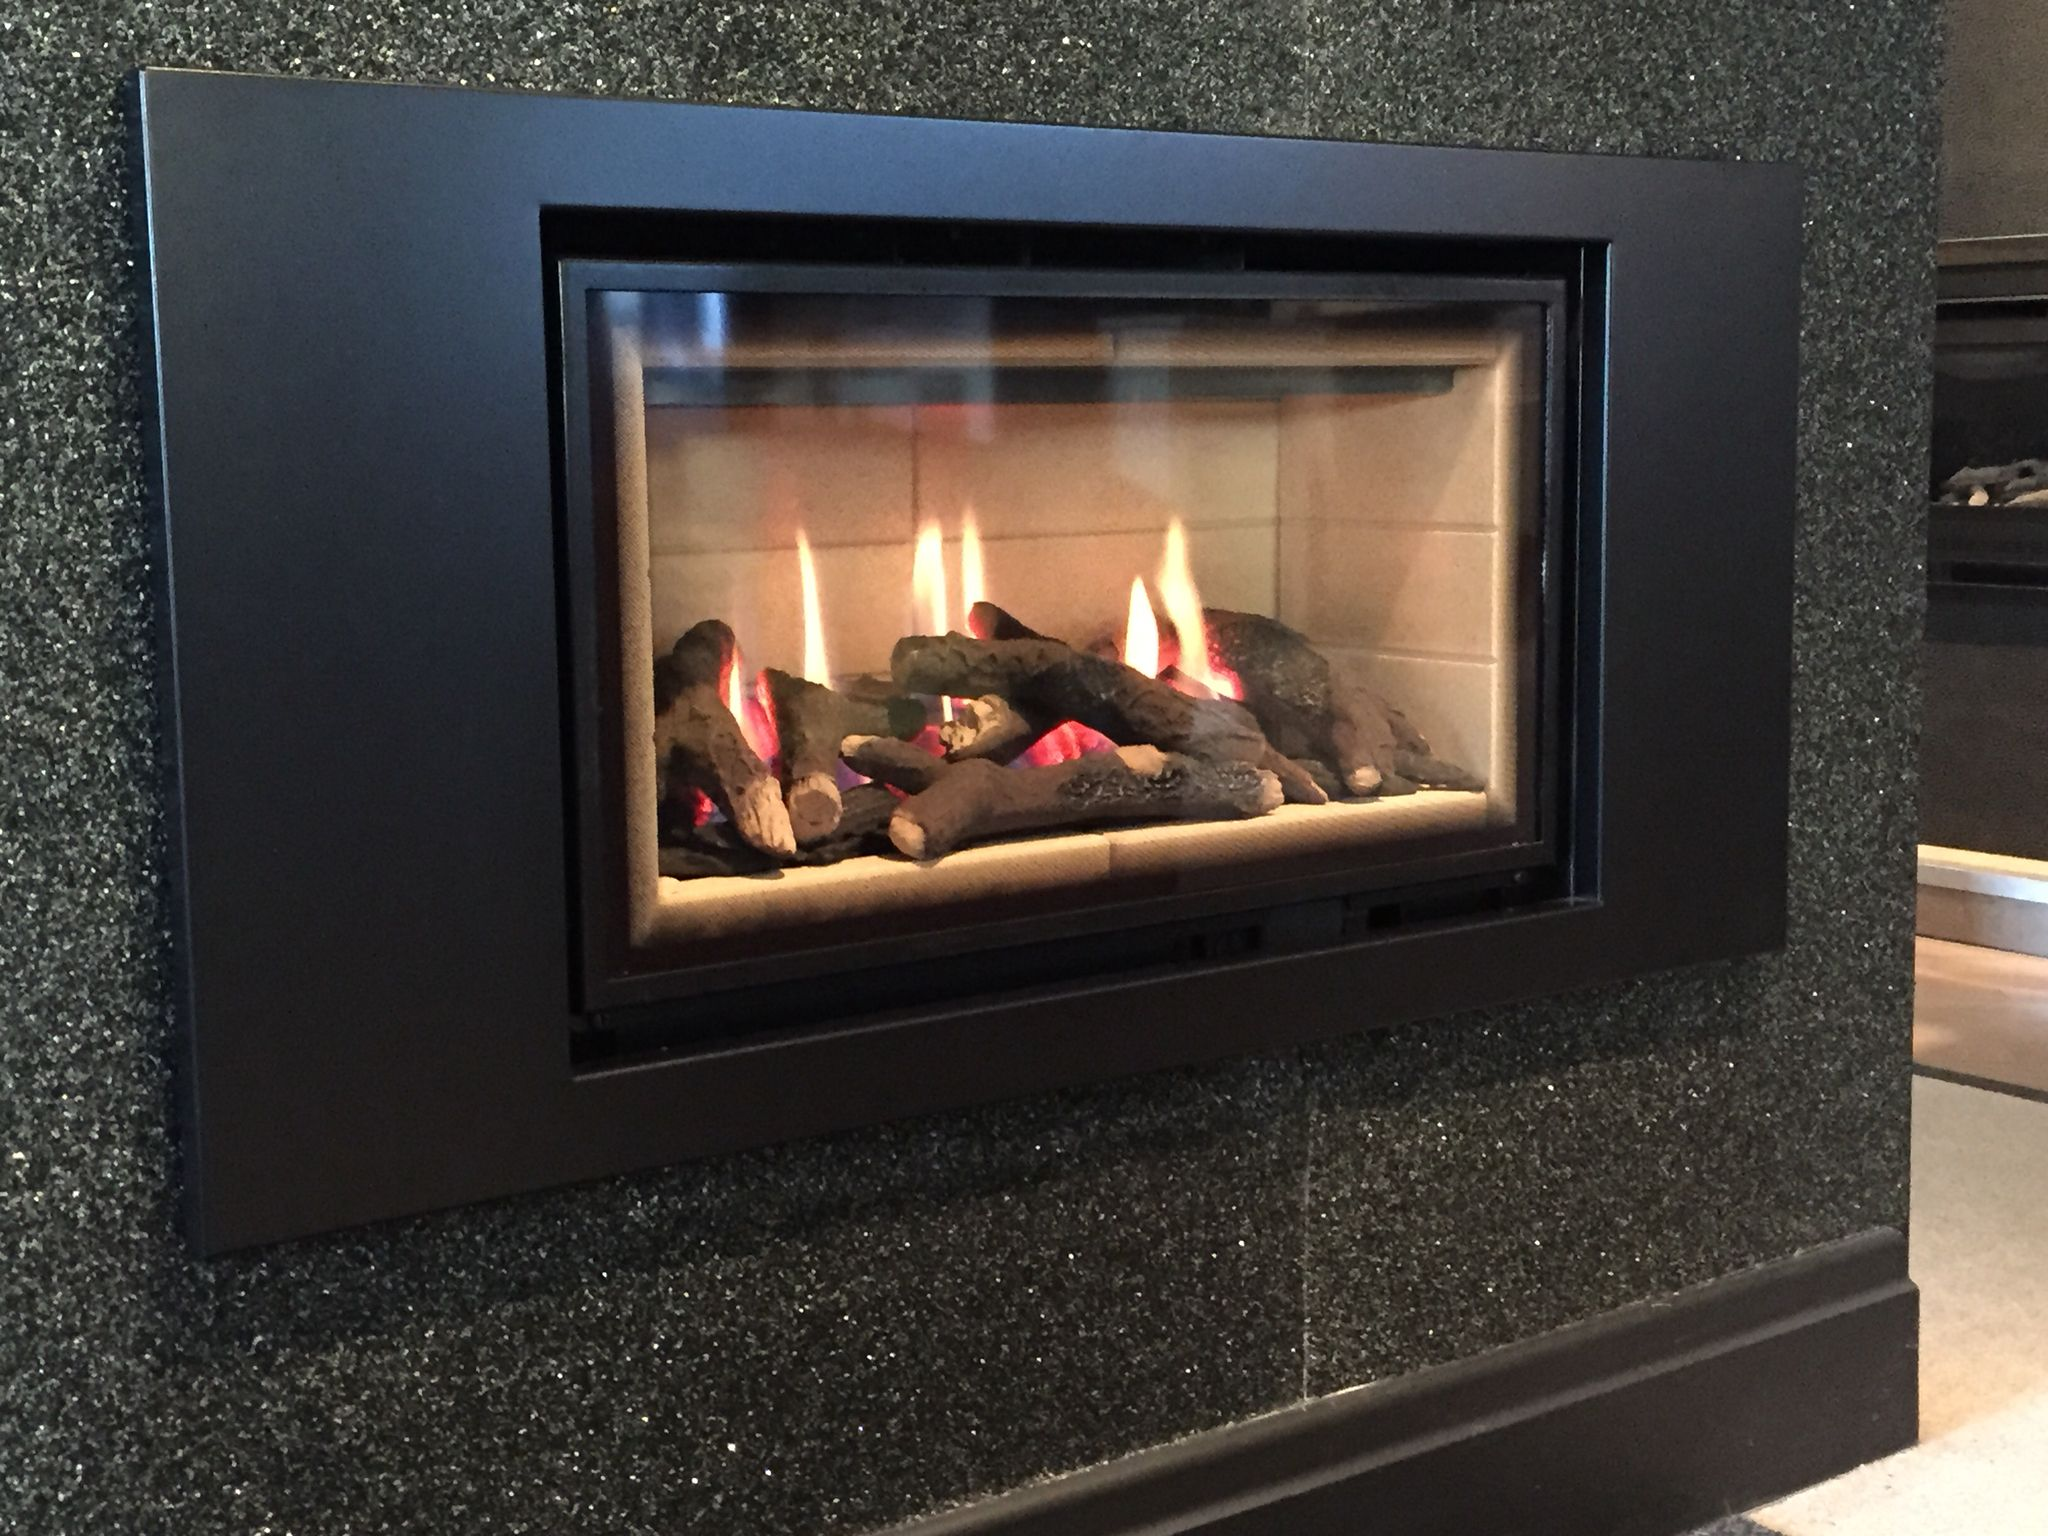 the ethos 750 landscape this is a very efficient modern gas fire